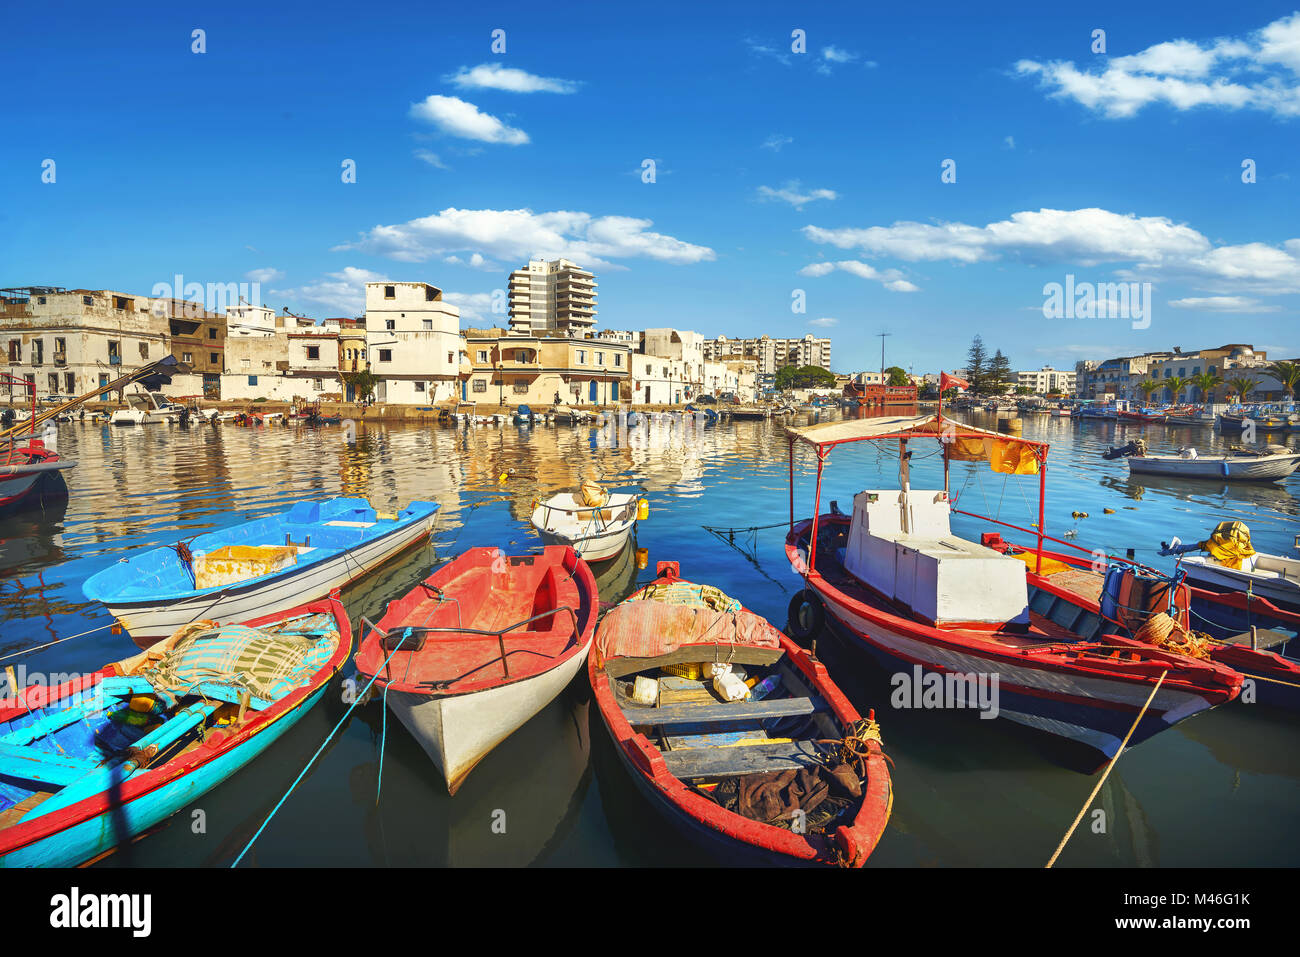 Traditional colorful fishing boats at old port in Bizerte. Tunisia, North Africa - Stock Image